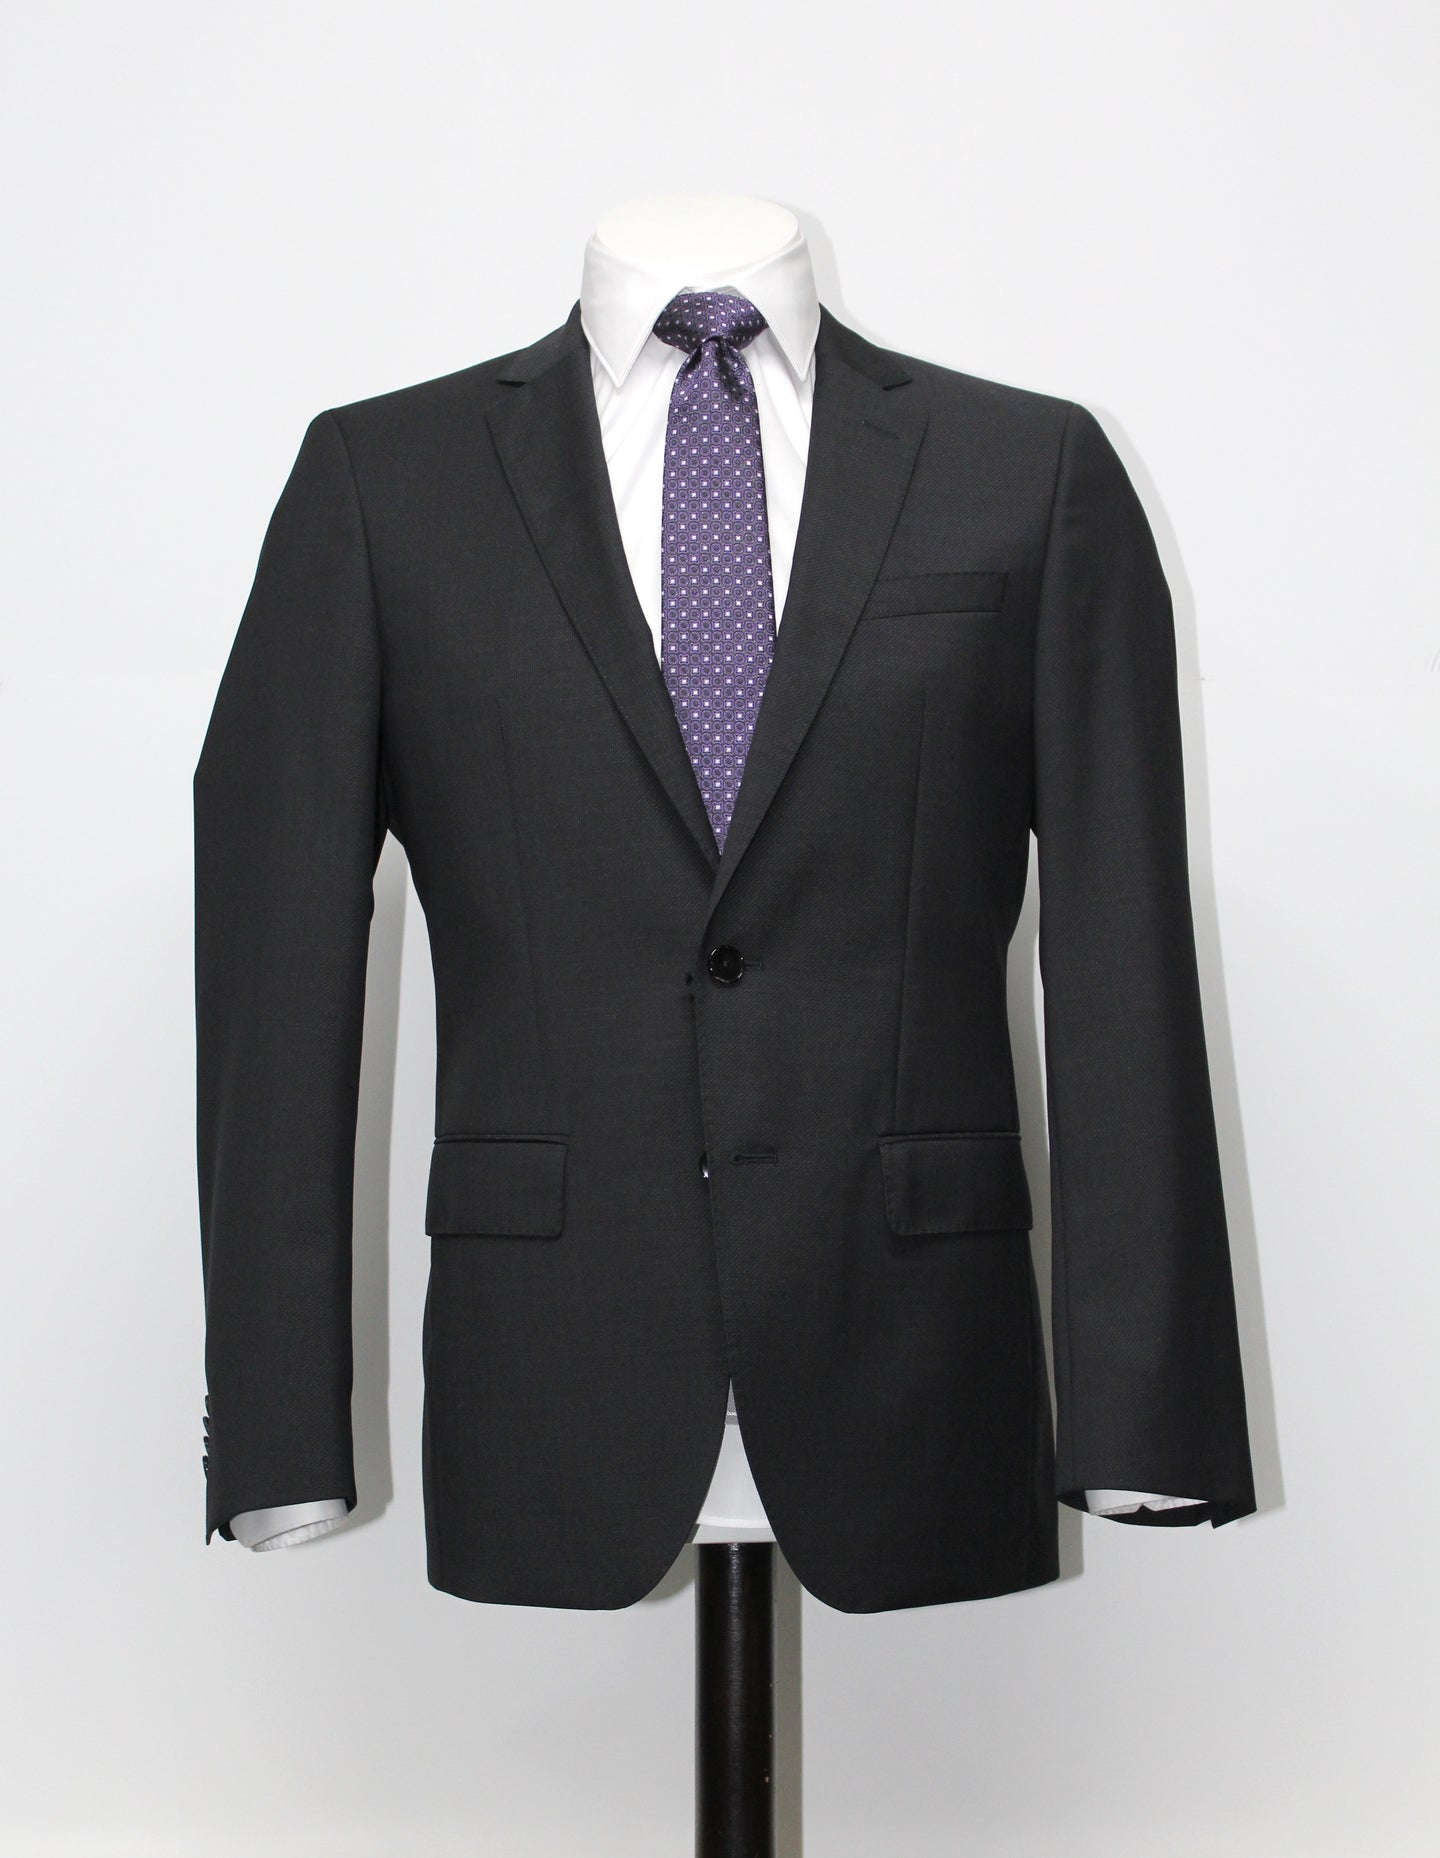 Hugo Boss, Slim Fit Suit - Charcoal (Jacket only)